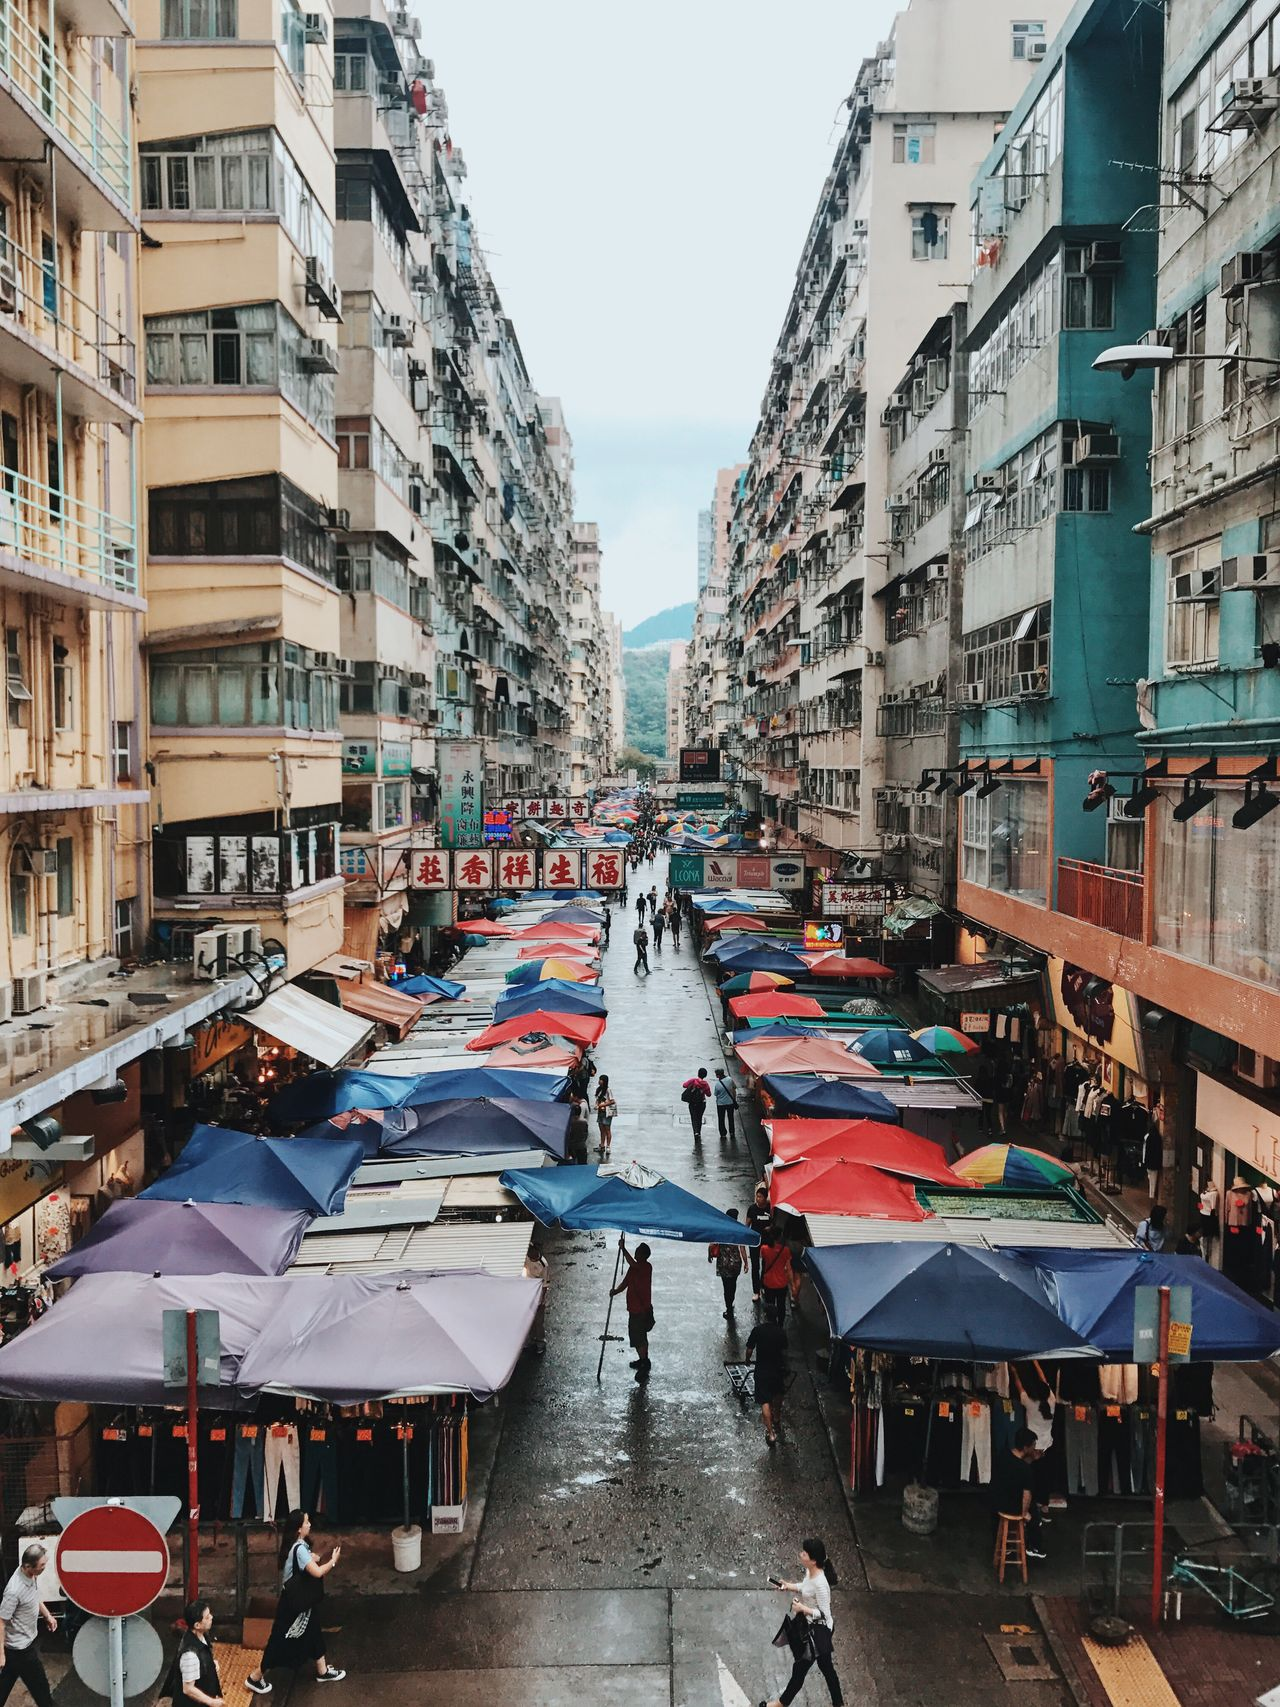 IPhone IPhoneography IPhone7Plus The Great Outdoors - 2017 EyeEm Awards The Street Photographer - 2017 EyeEm Awards HongKong Hong Kong ShotOnIphone Live For The Story